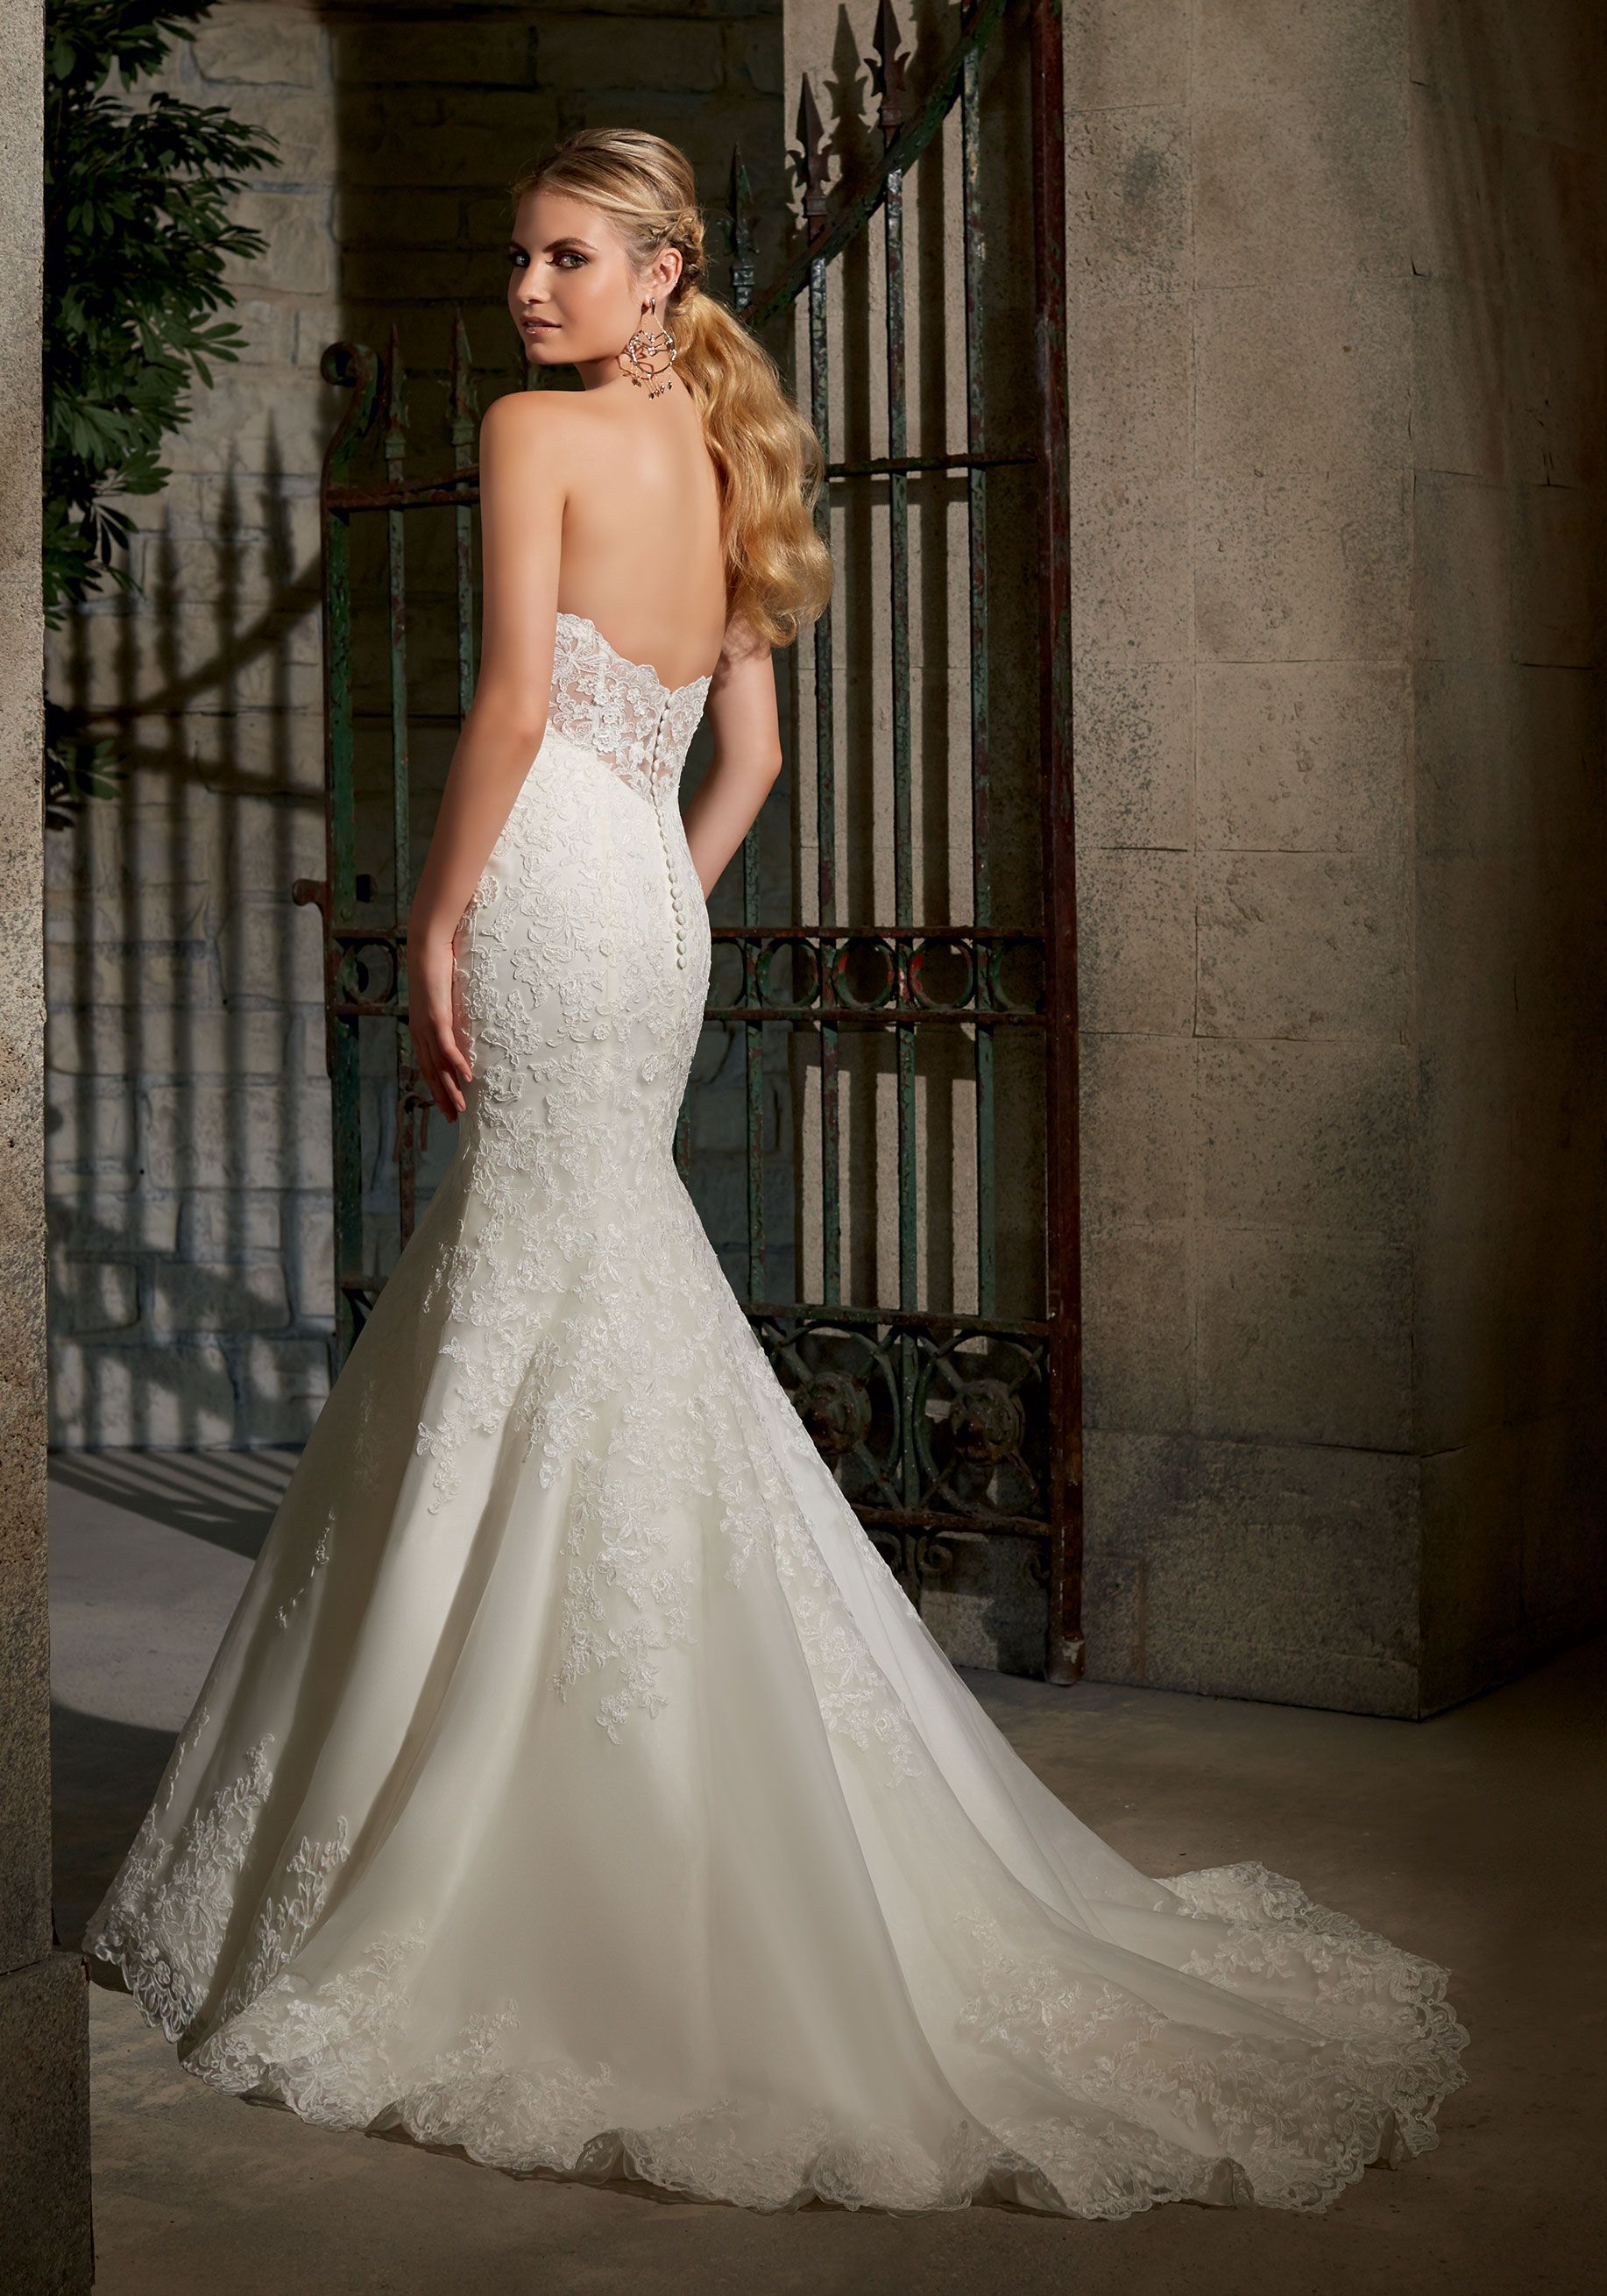 Moonlight Couture Spring 2021 Wedding Dresses Wedding Inspirasi Wedding Gowns Mermaid Wedding Dresses Lace Beaded Wedding Gowns [ 1500 x 900 Pixel ]